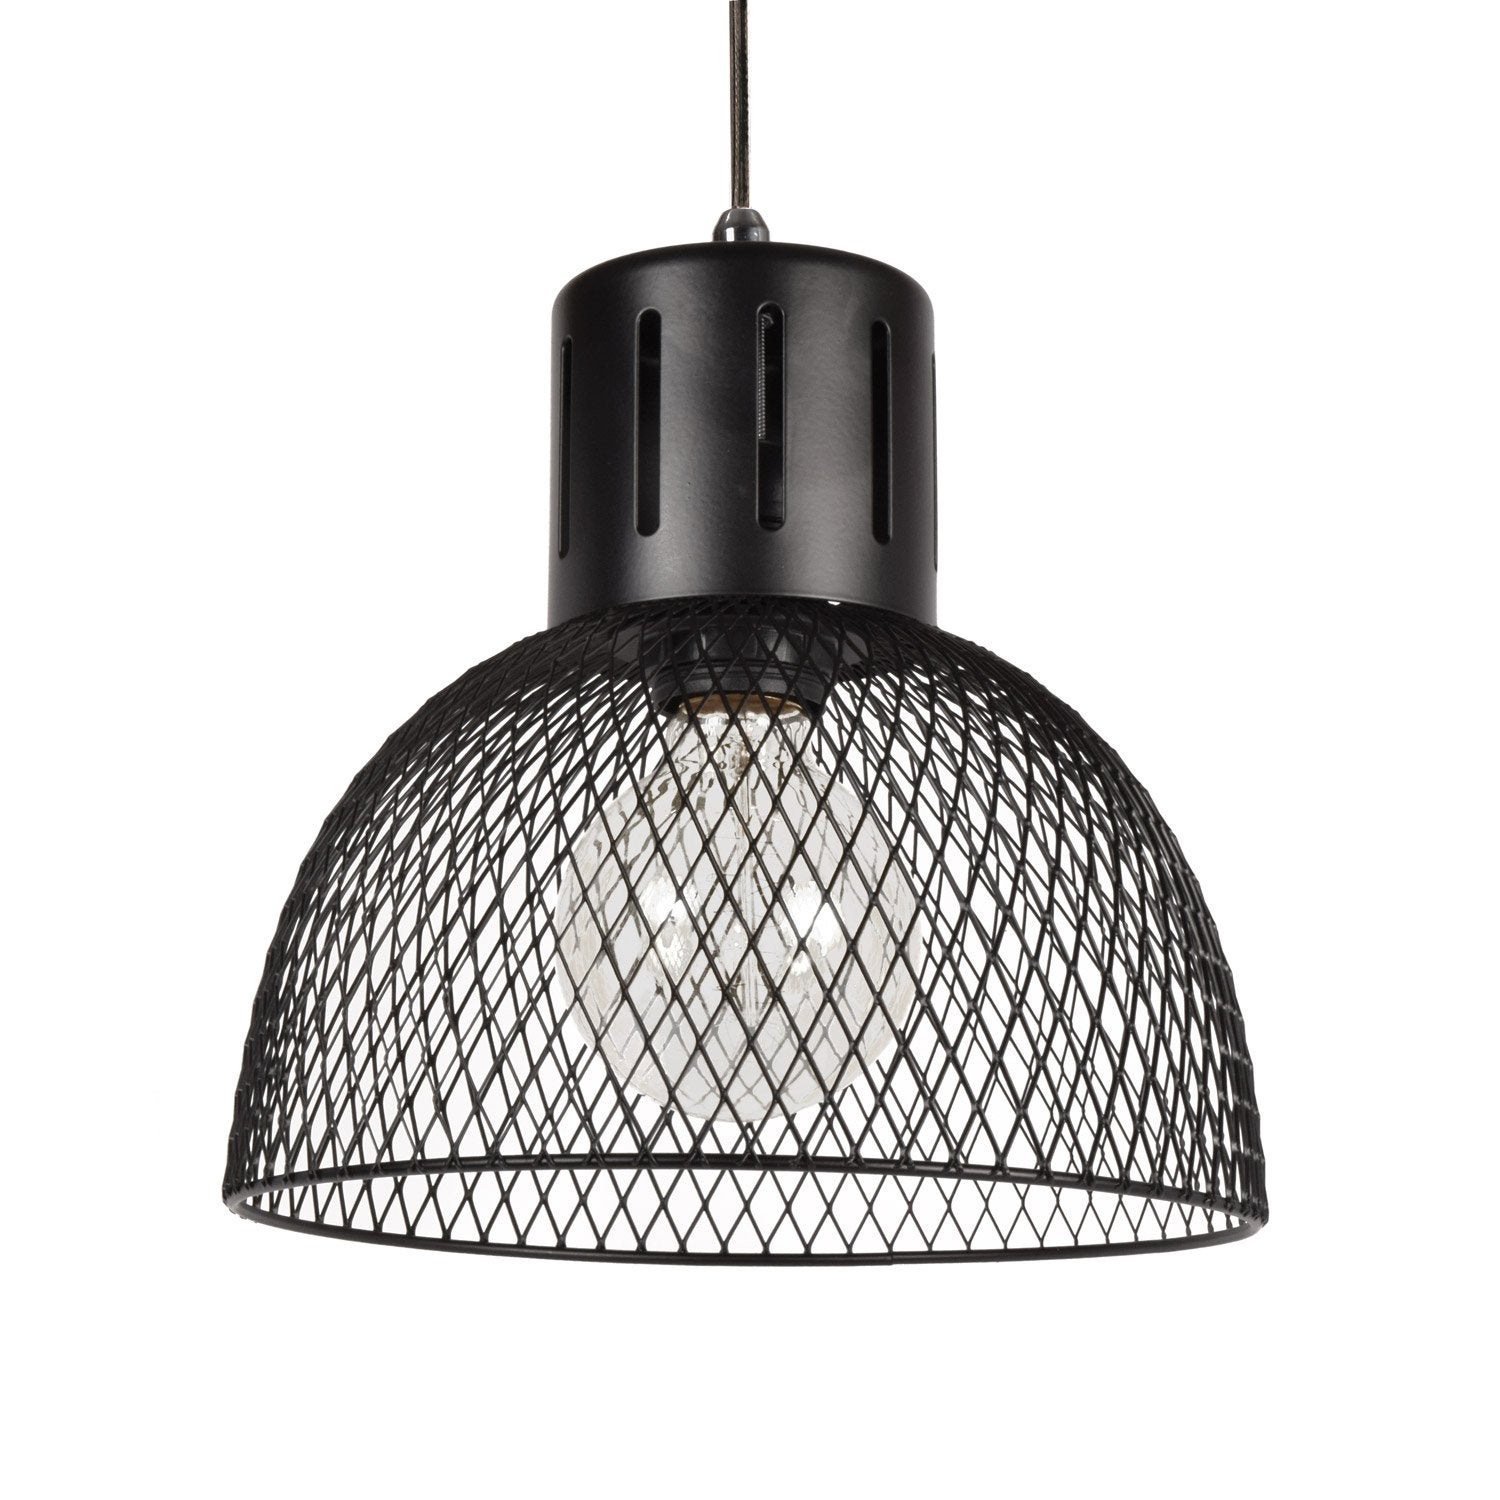 Suspension, e27 design Bedford métal noir 1 x 40 W SEYNAVE